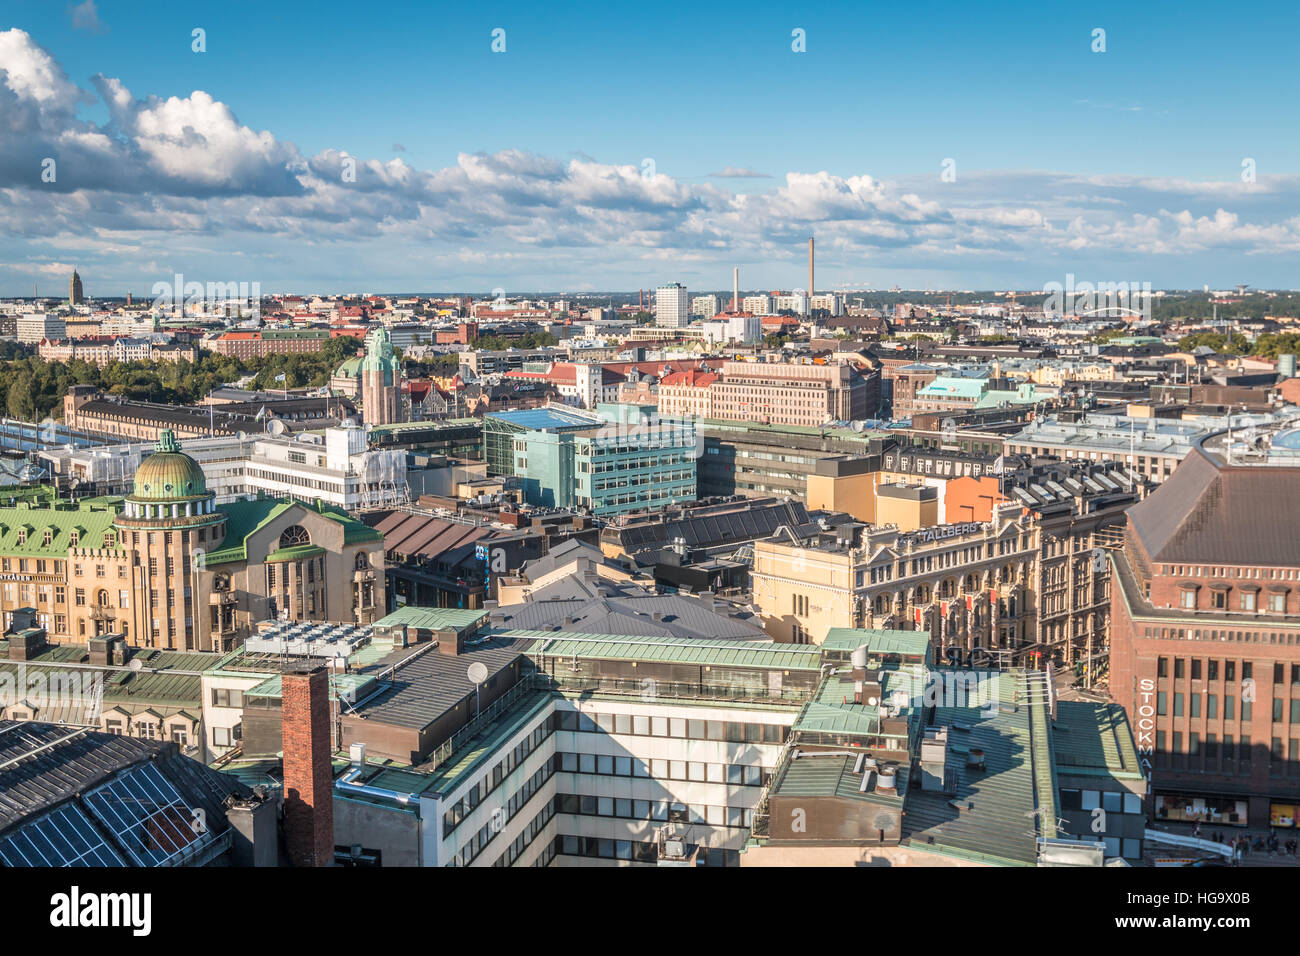 City view of Helsinki in Finland Stock Photo